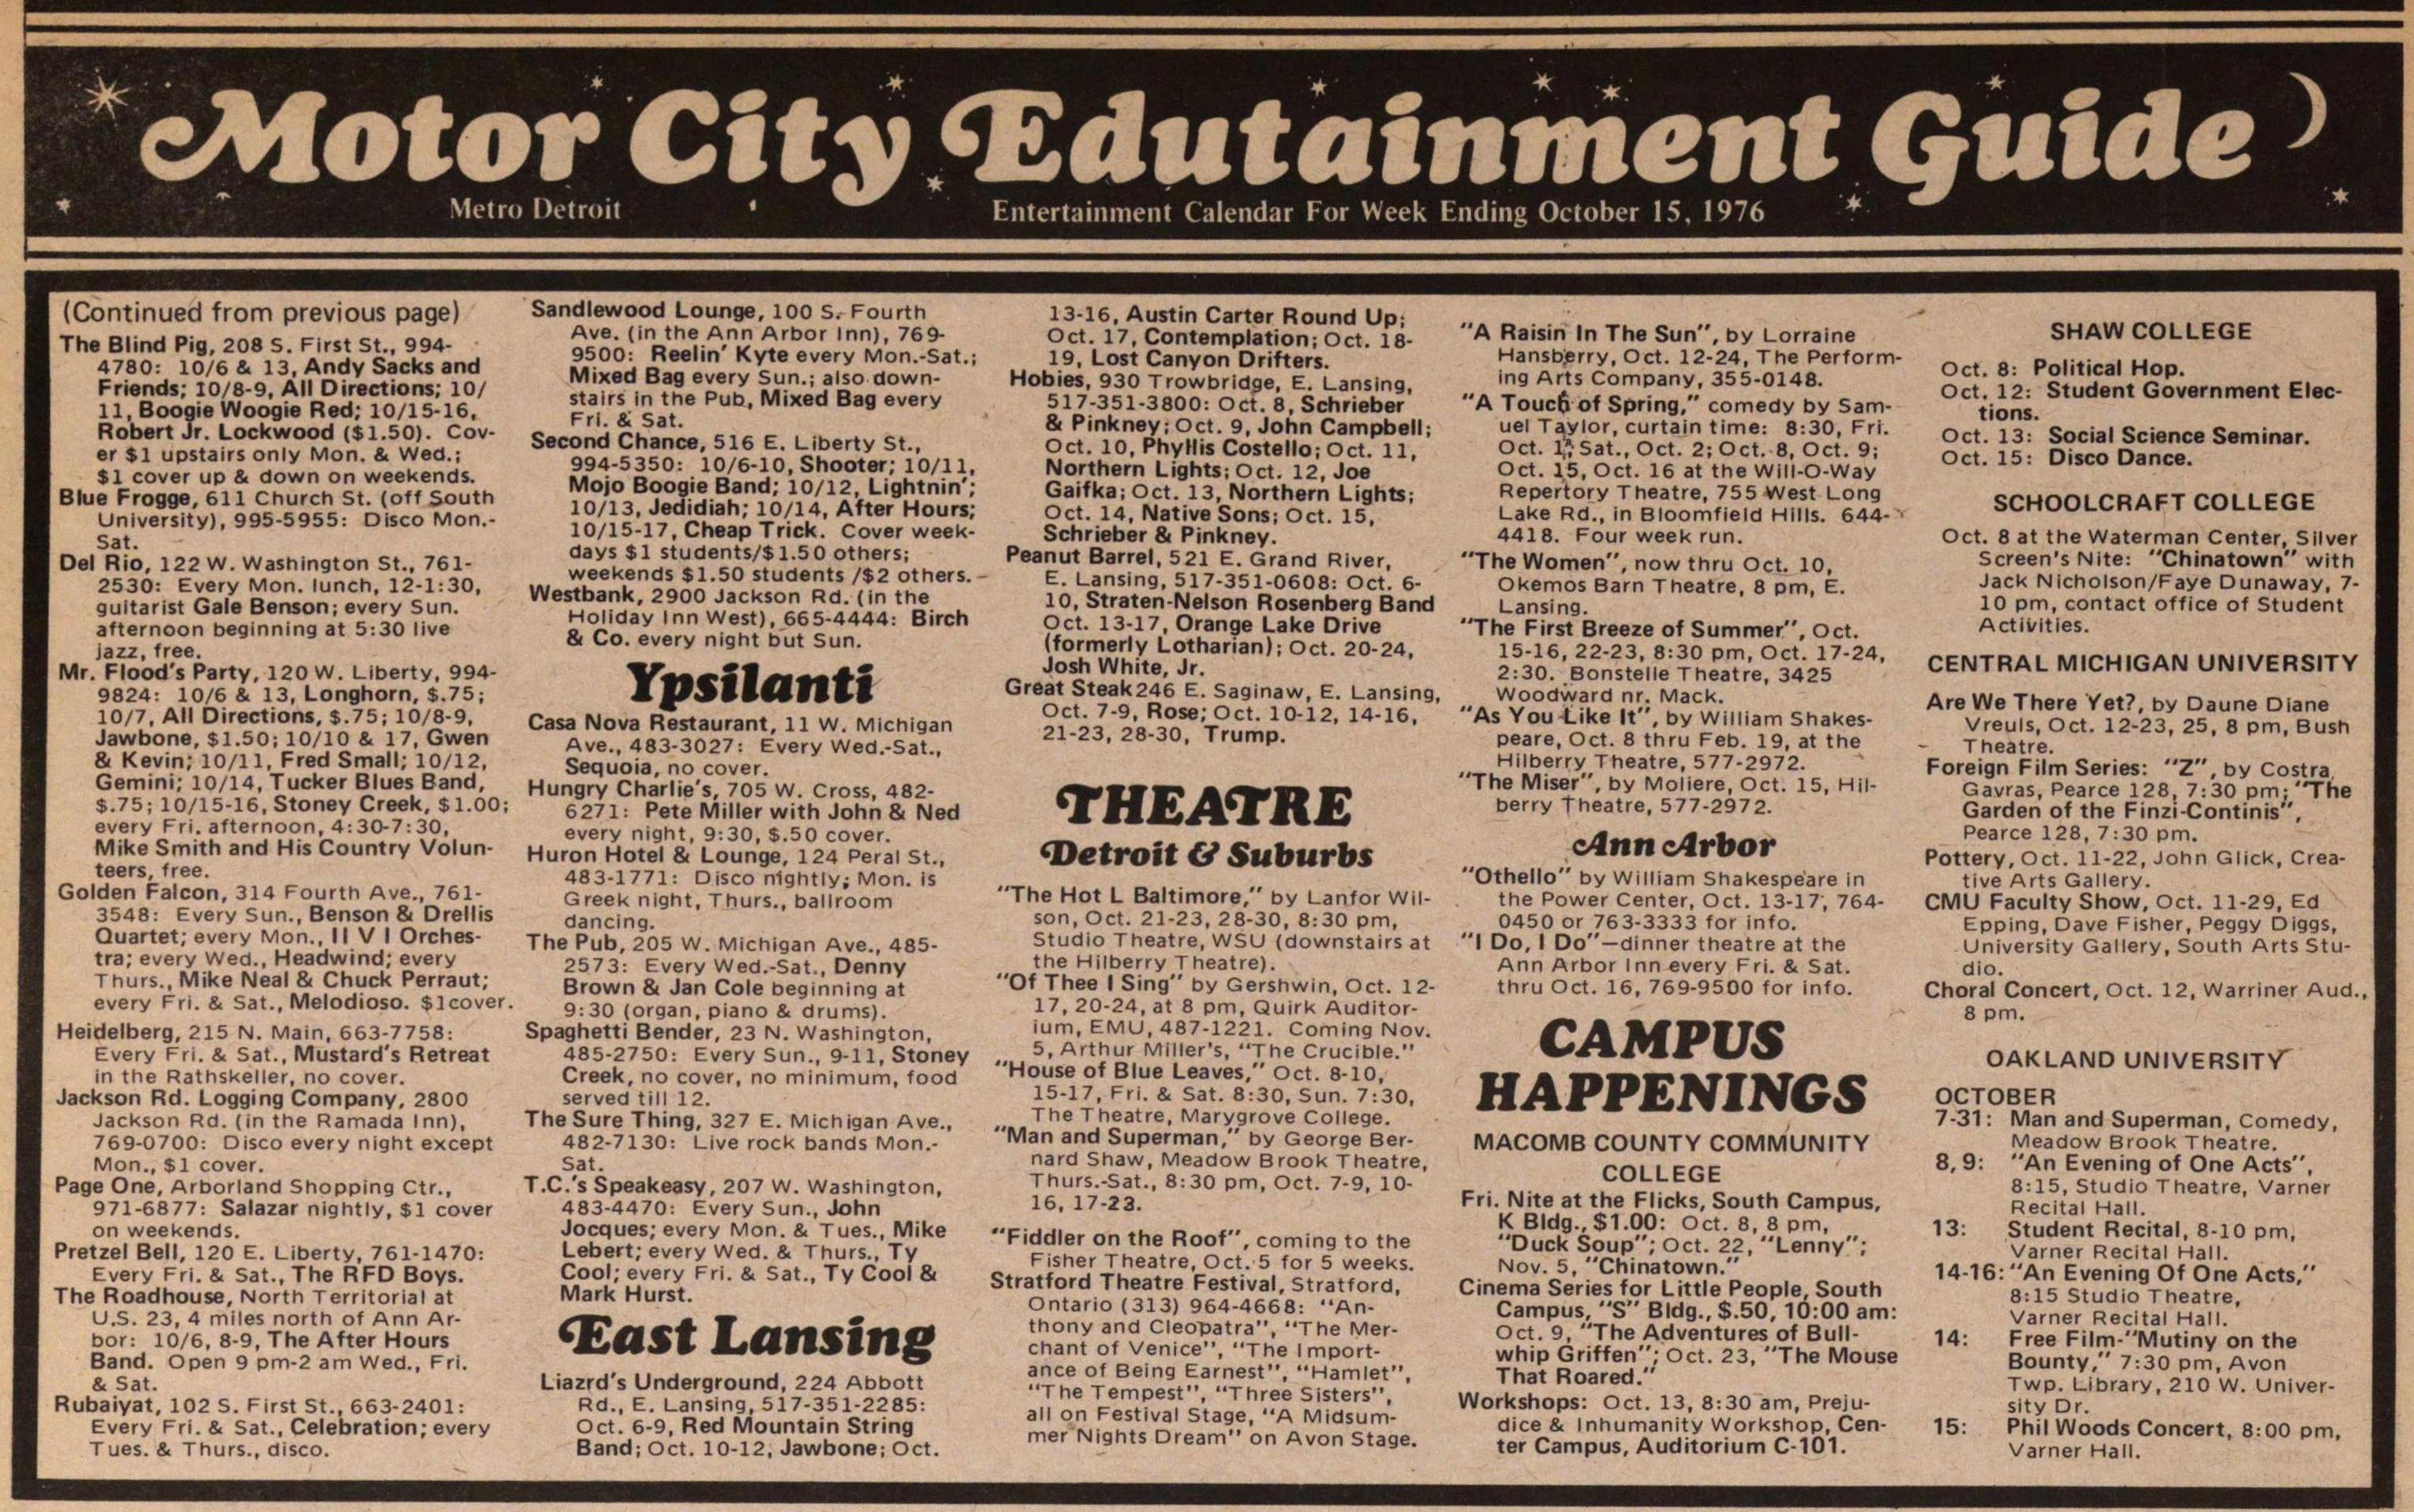 Motor City Edutainment Guide image